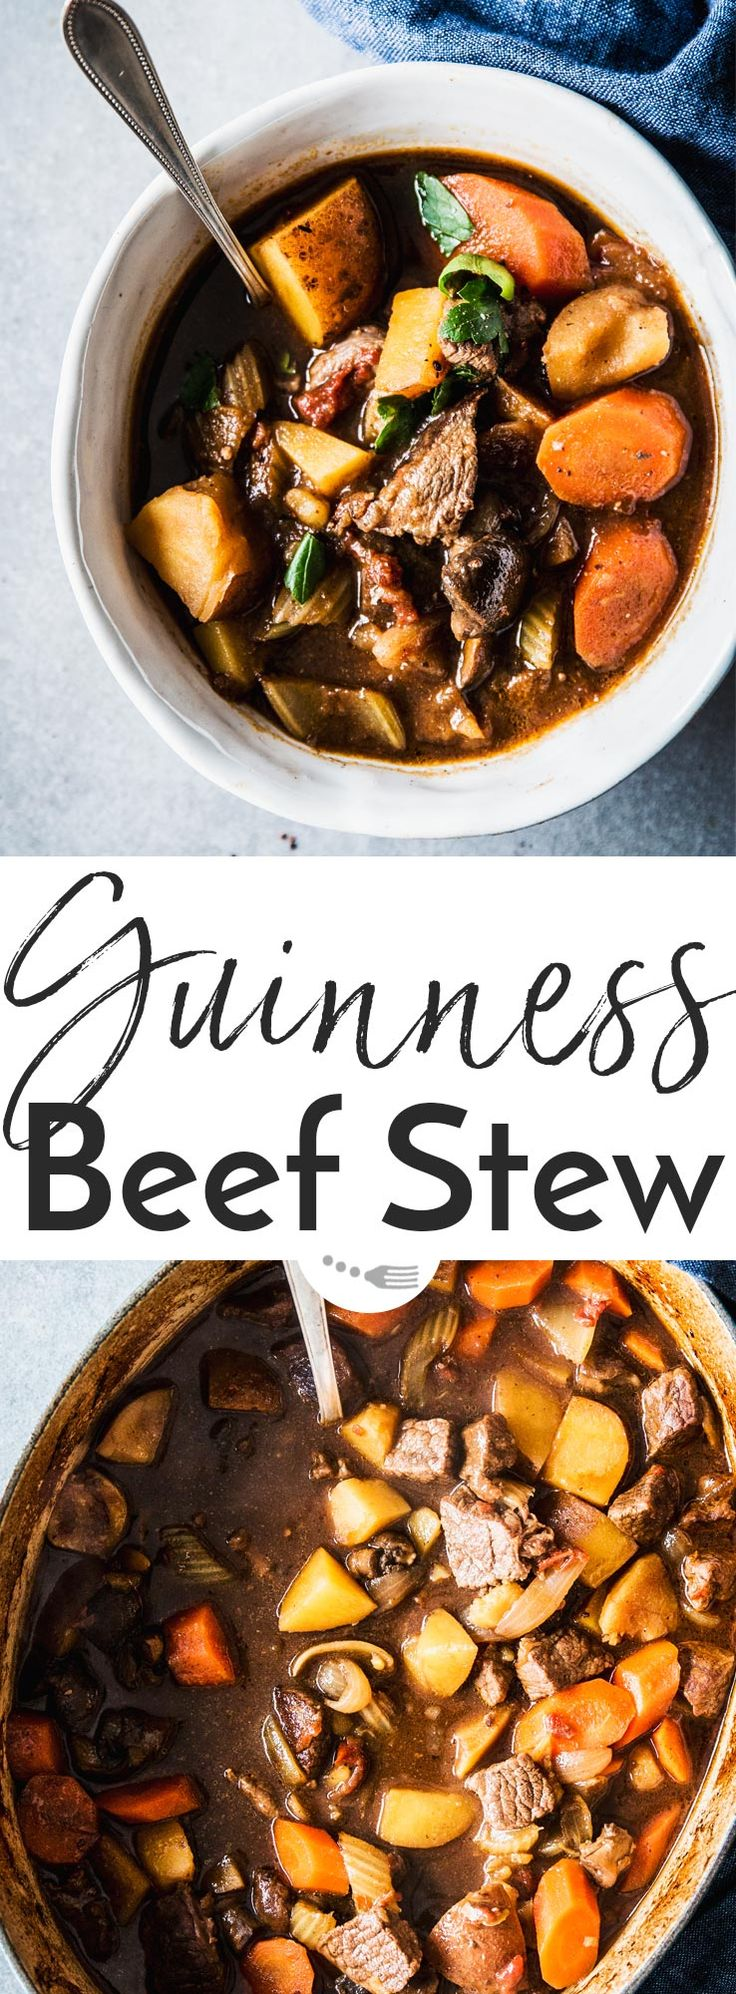 Guinness Beef Stew - pure winter comfort food! This is easy to make and cooks in the oven for hands-off dinner prep. A great meal for St. Patrick's Day instead of traditional Irish stew, or any time you're craving a rich and hearty stew on a cold night. Can be made in the slow cooker OR in a Dutch oven. | #recipe #easyrecipes #dinner #easydinner #stpatricksday #beef #beefrecipes #stew #comfortfood